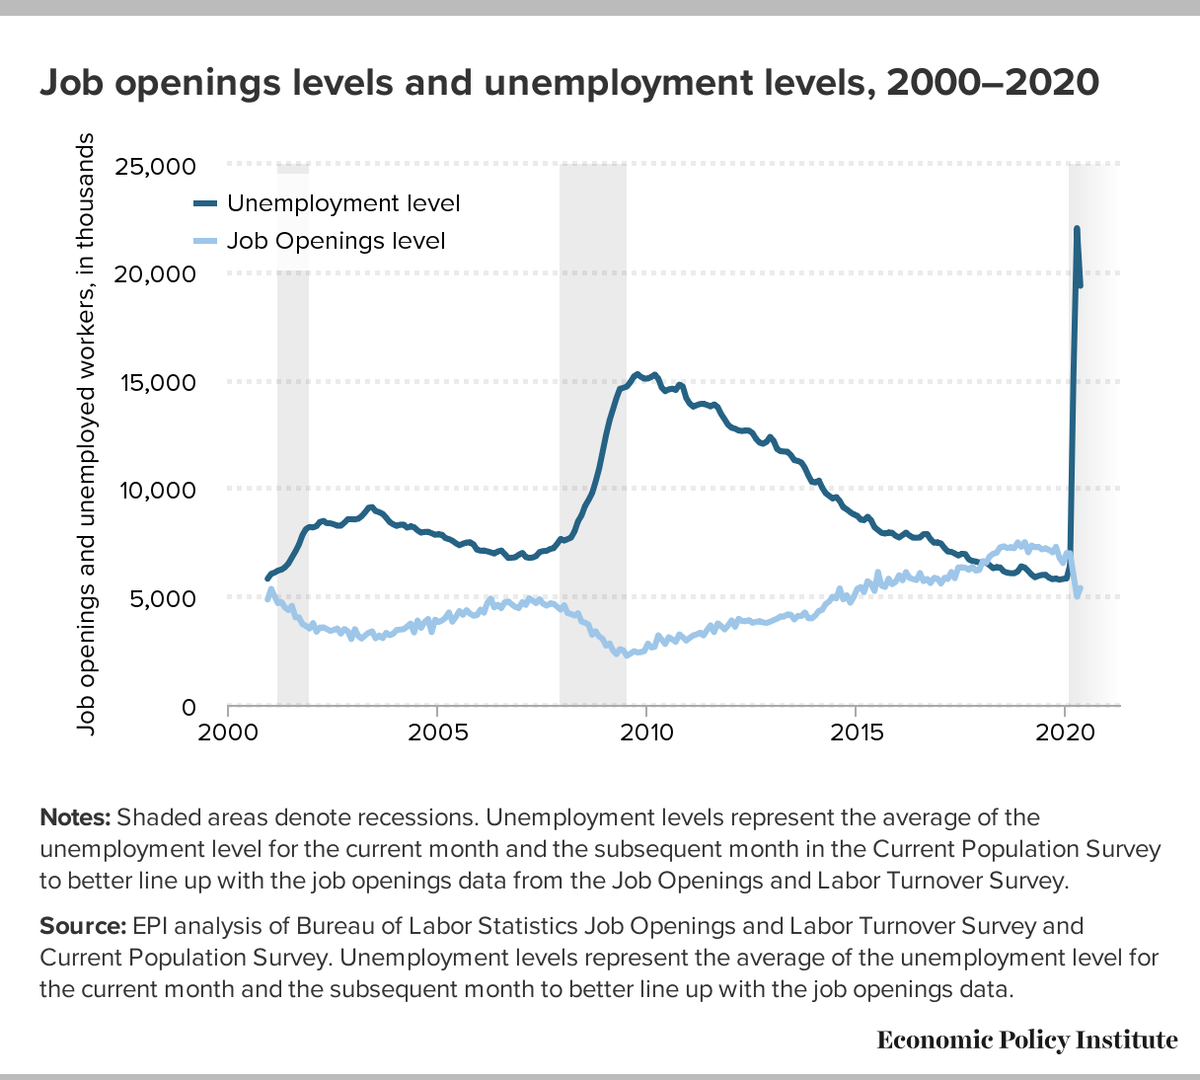 # of unemployed workers (w/o including non-W2 workers   expanded coverage under PUA) exceeds the # of available jobs by approx. 4x according to the Economic Policy Institute. The extra $600/week in unemployment insurance didn't prevent workers from going to jobs that don't exist!